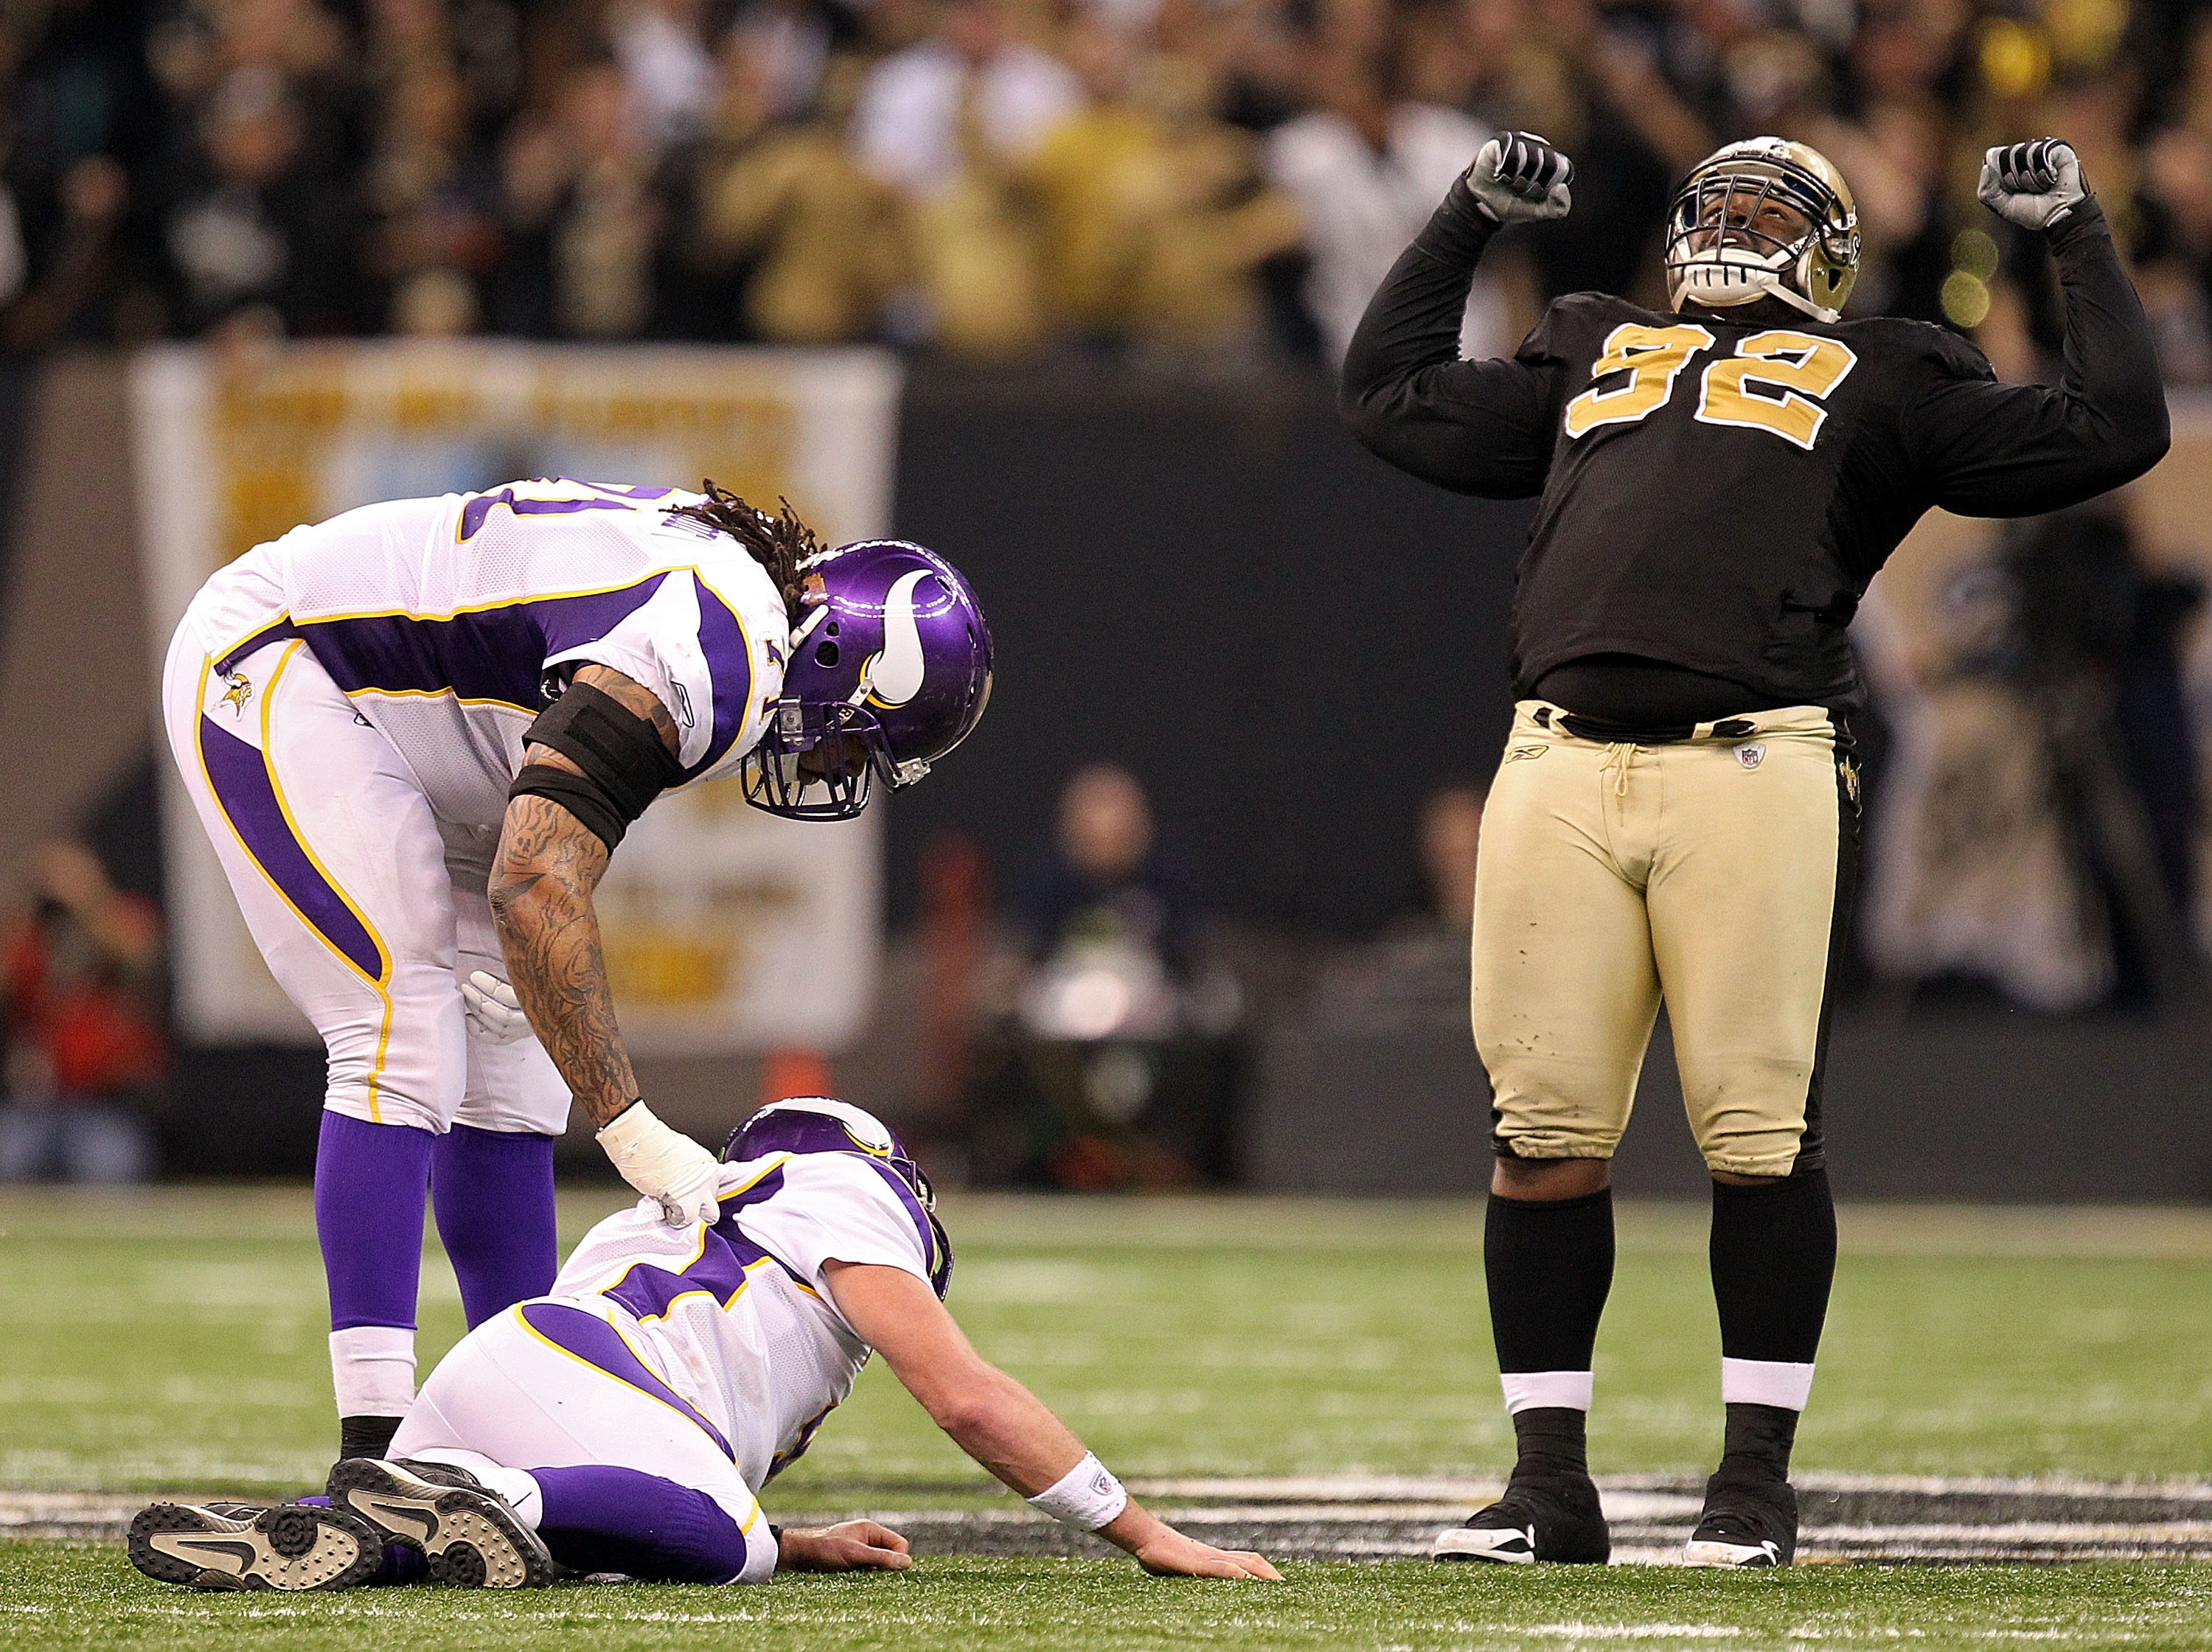 NEW ORLEANS - JANUARY 24:  Phil Loadholt #71 of the Minnesota Vikings checks on teammate Brett Favre #4  after he was hit by Remi Ayodele #92 of the New Orleans Saints during the NFC Championship Game at the Louisiana Superdome on January 24, 2010 in New